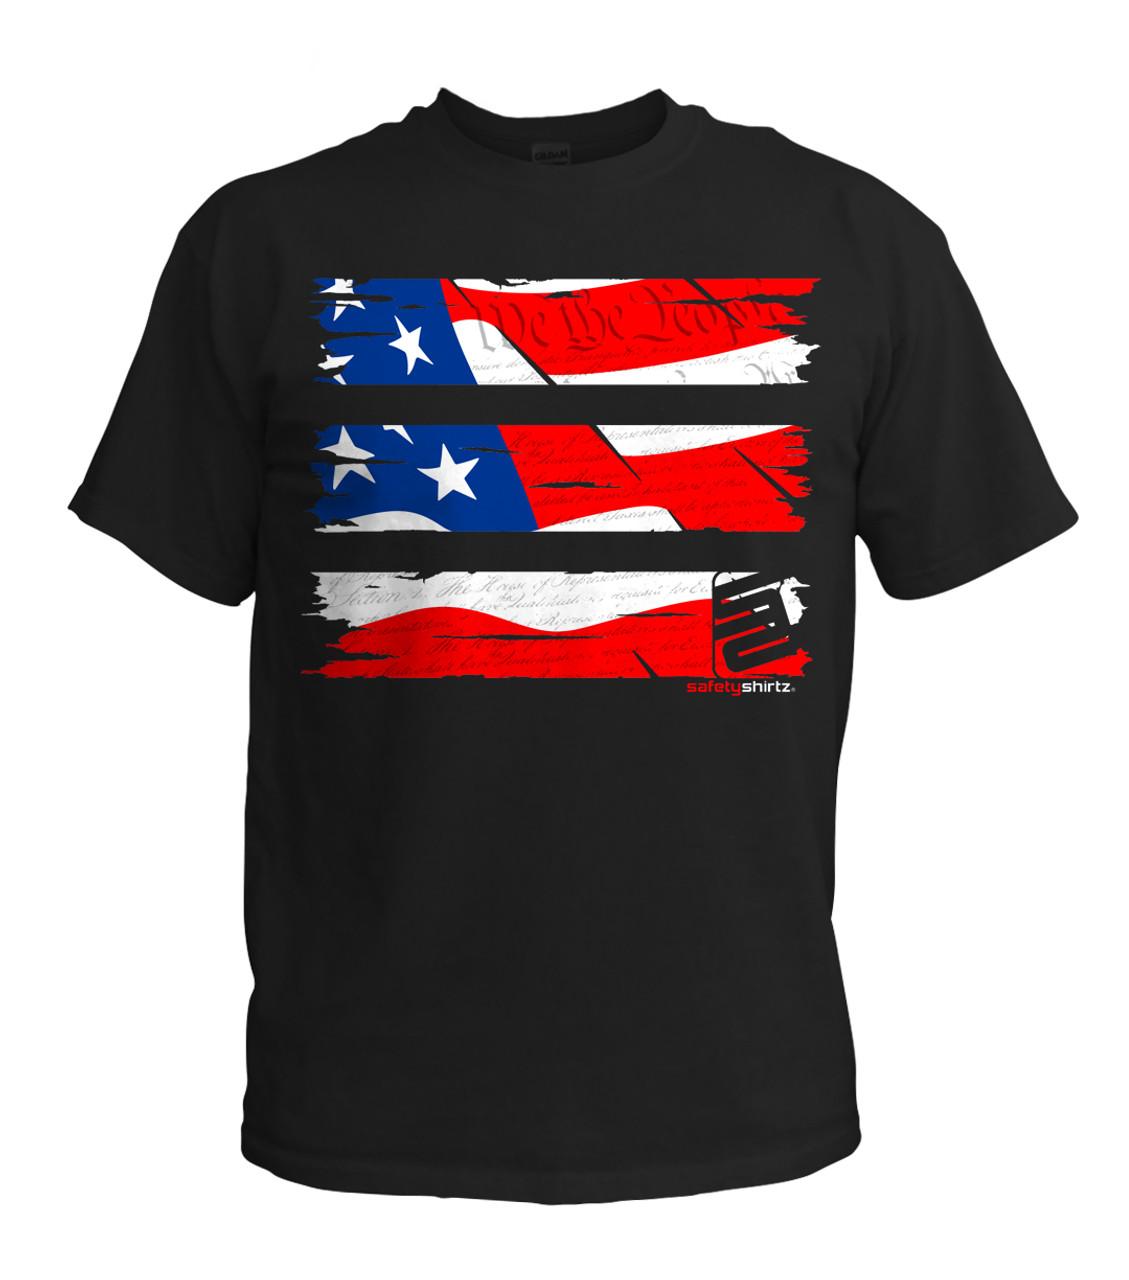 689bd5edf SafetyShirtz - Youth Old Glory Safety Shirt - Red/White/Blue/Black -  Safetyshirtz